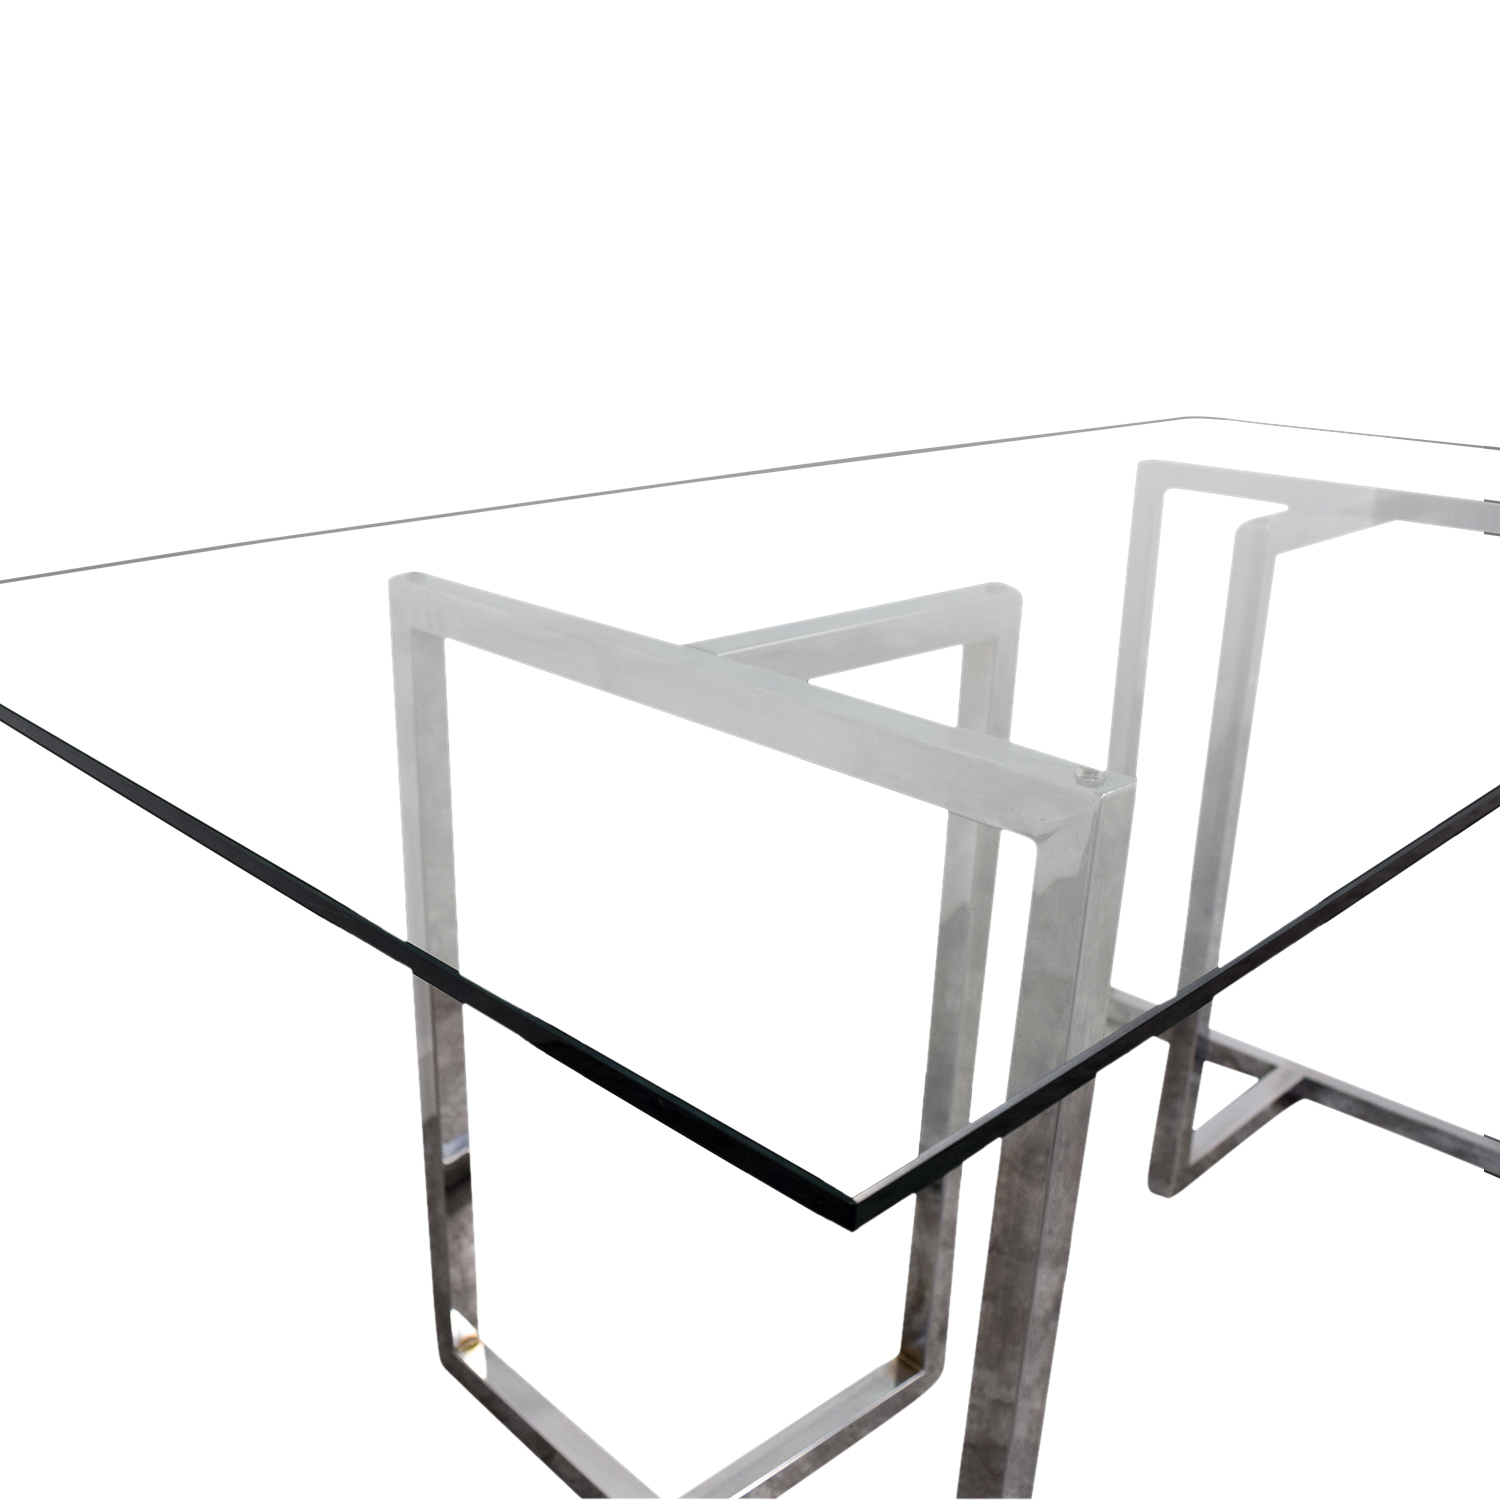 CB2 Silverado Rectangular Glass and Chrome Dining Table / Dinner Tables